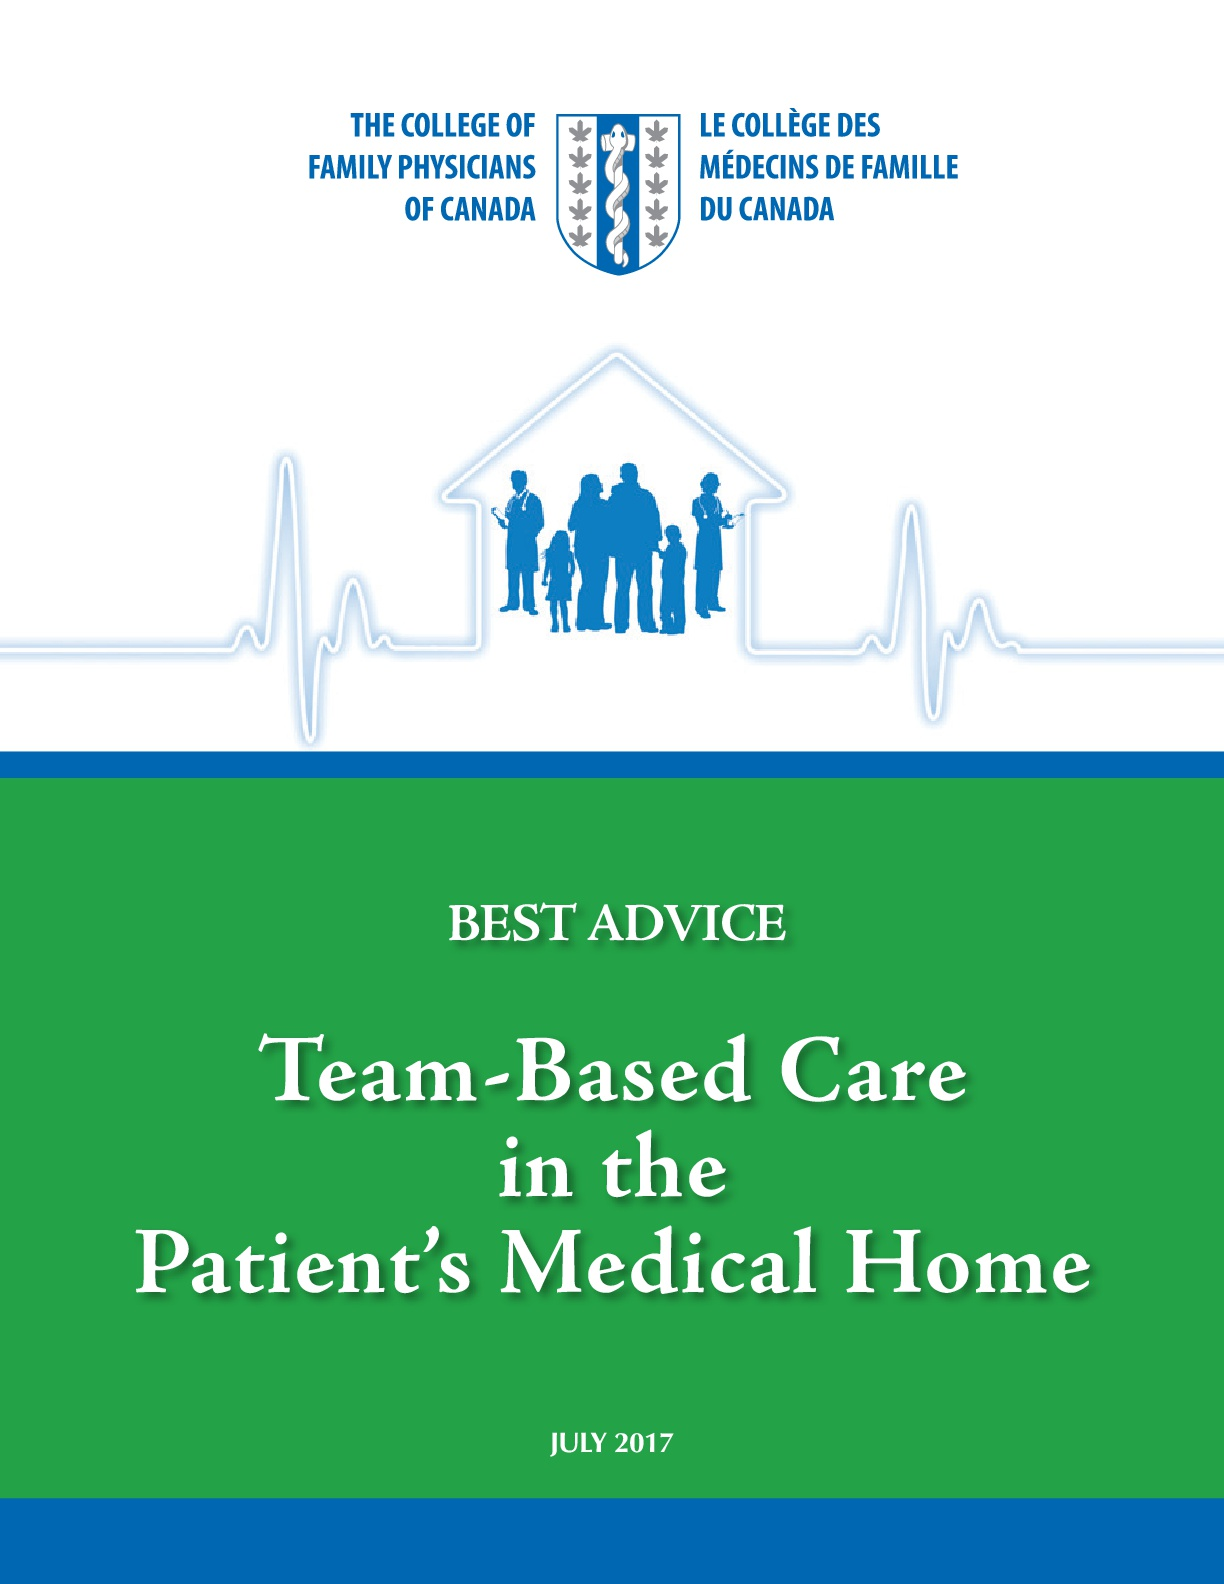 Best Advice Guide: Team-Based Care in the Patient's Medical Home